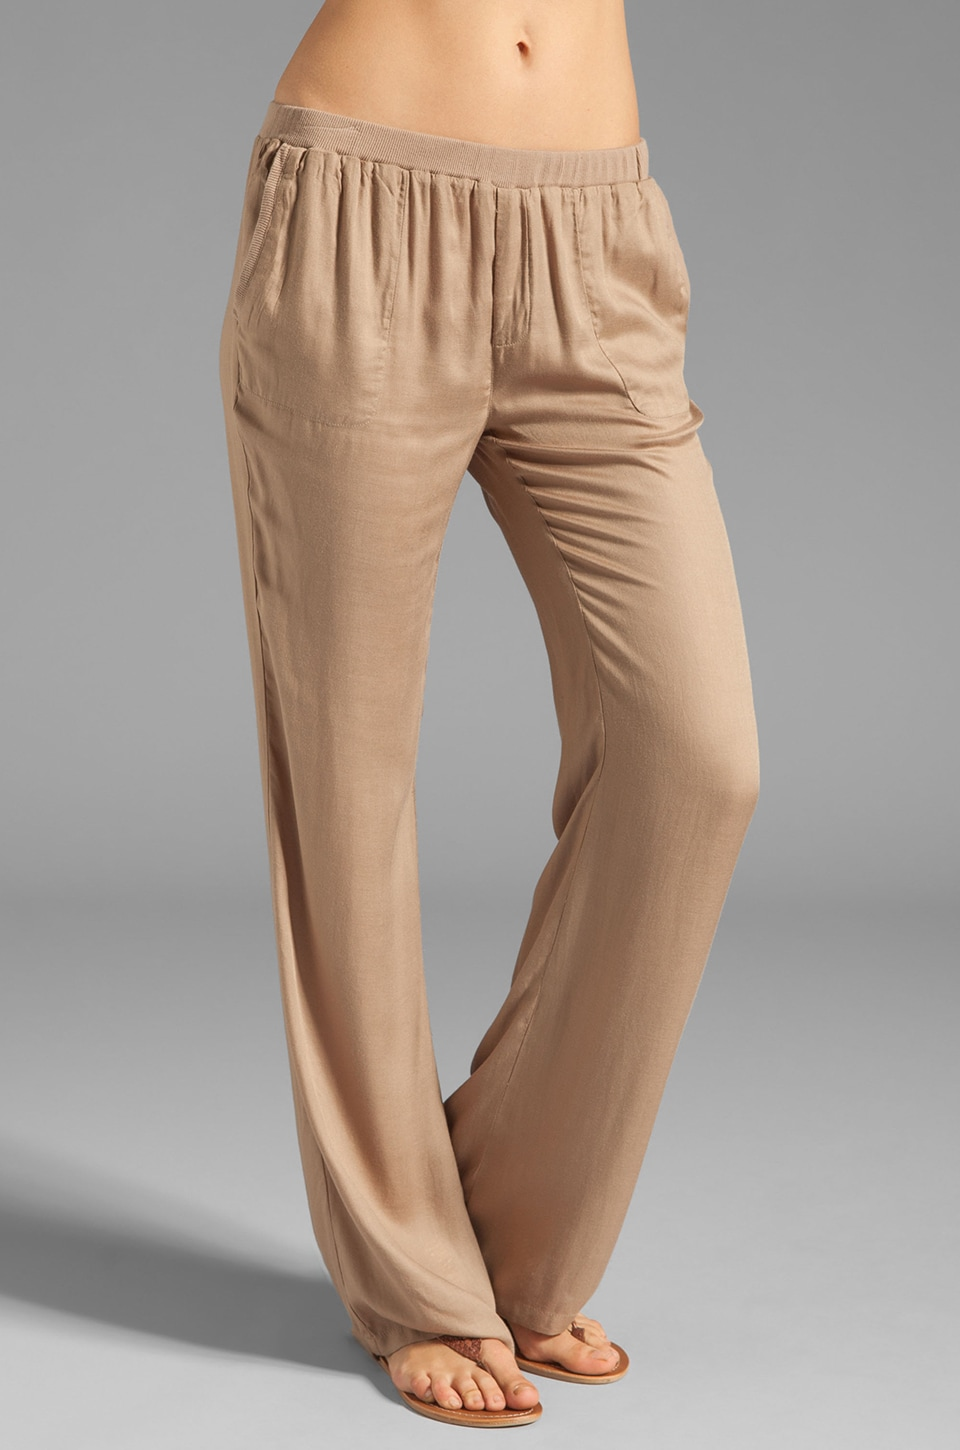 Soft Joie Thatcher Wide Leg Pant in Dark Sand